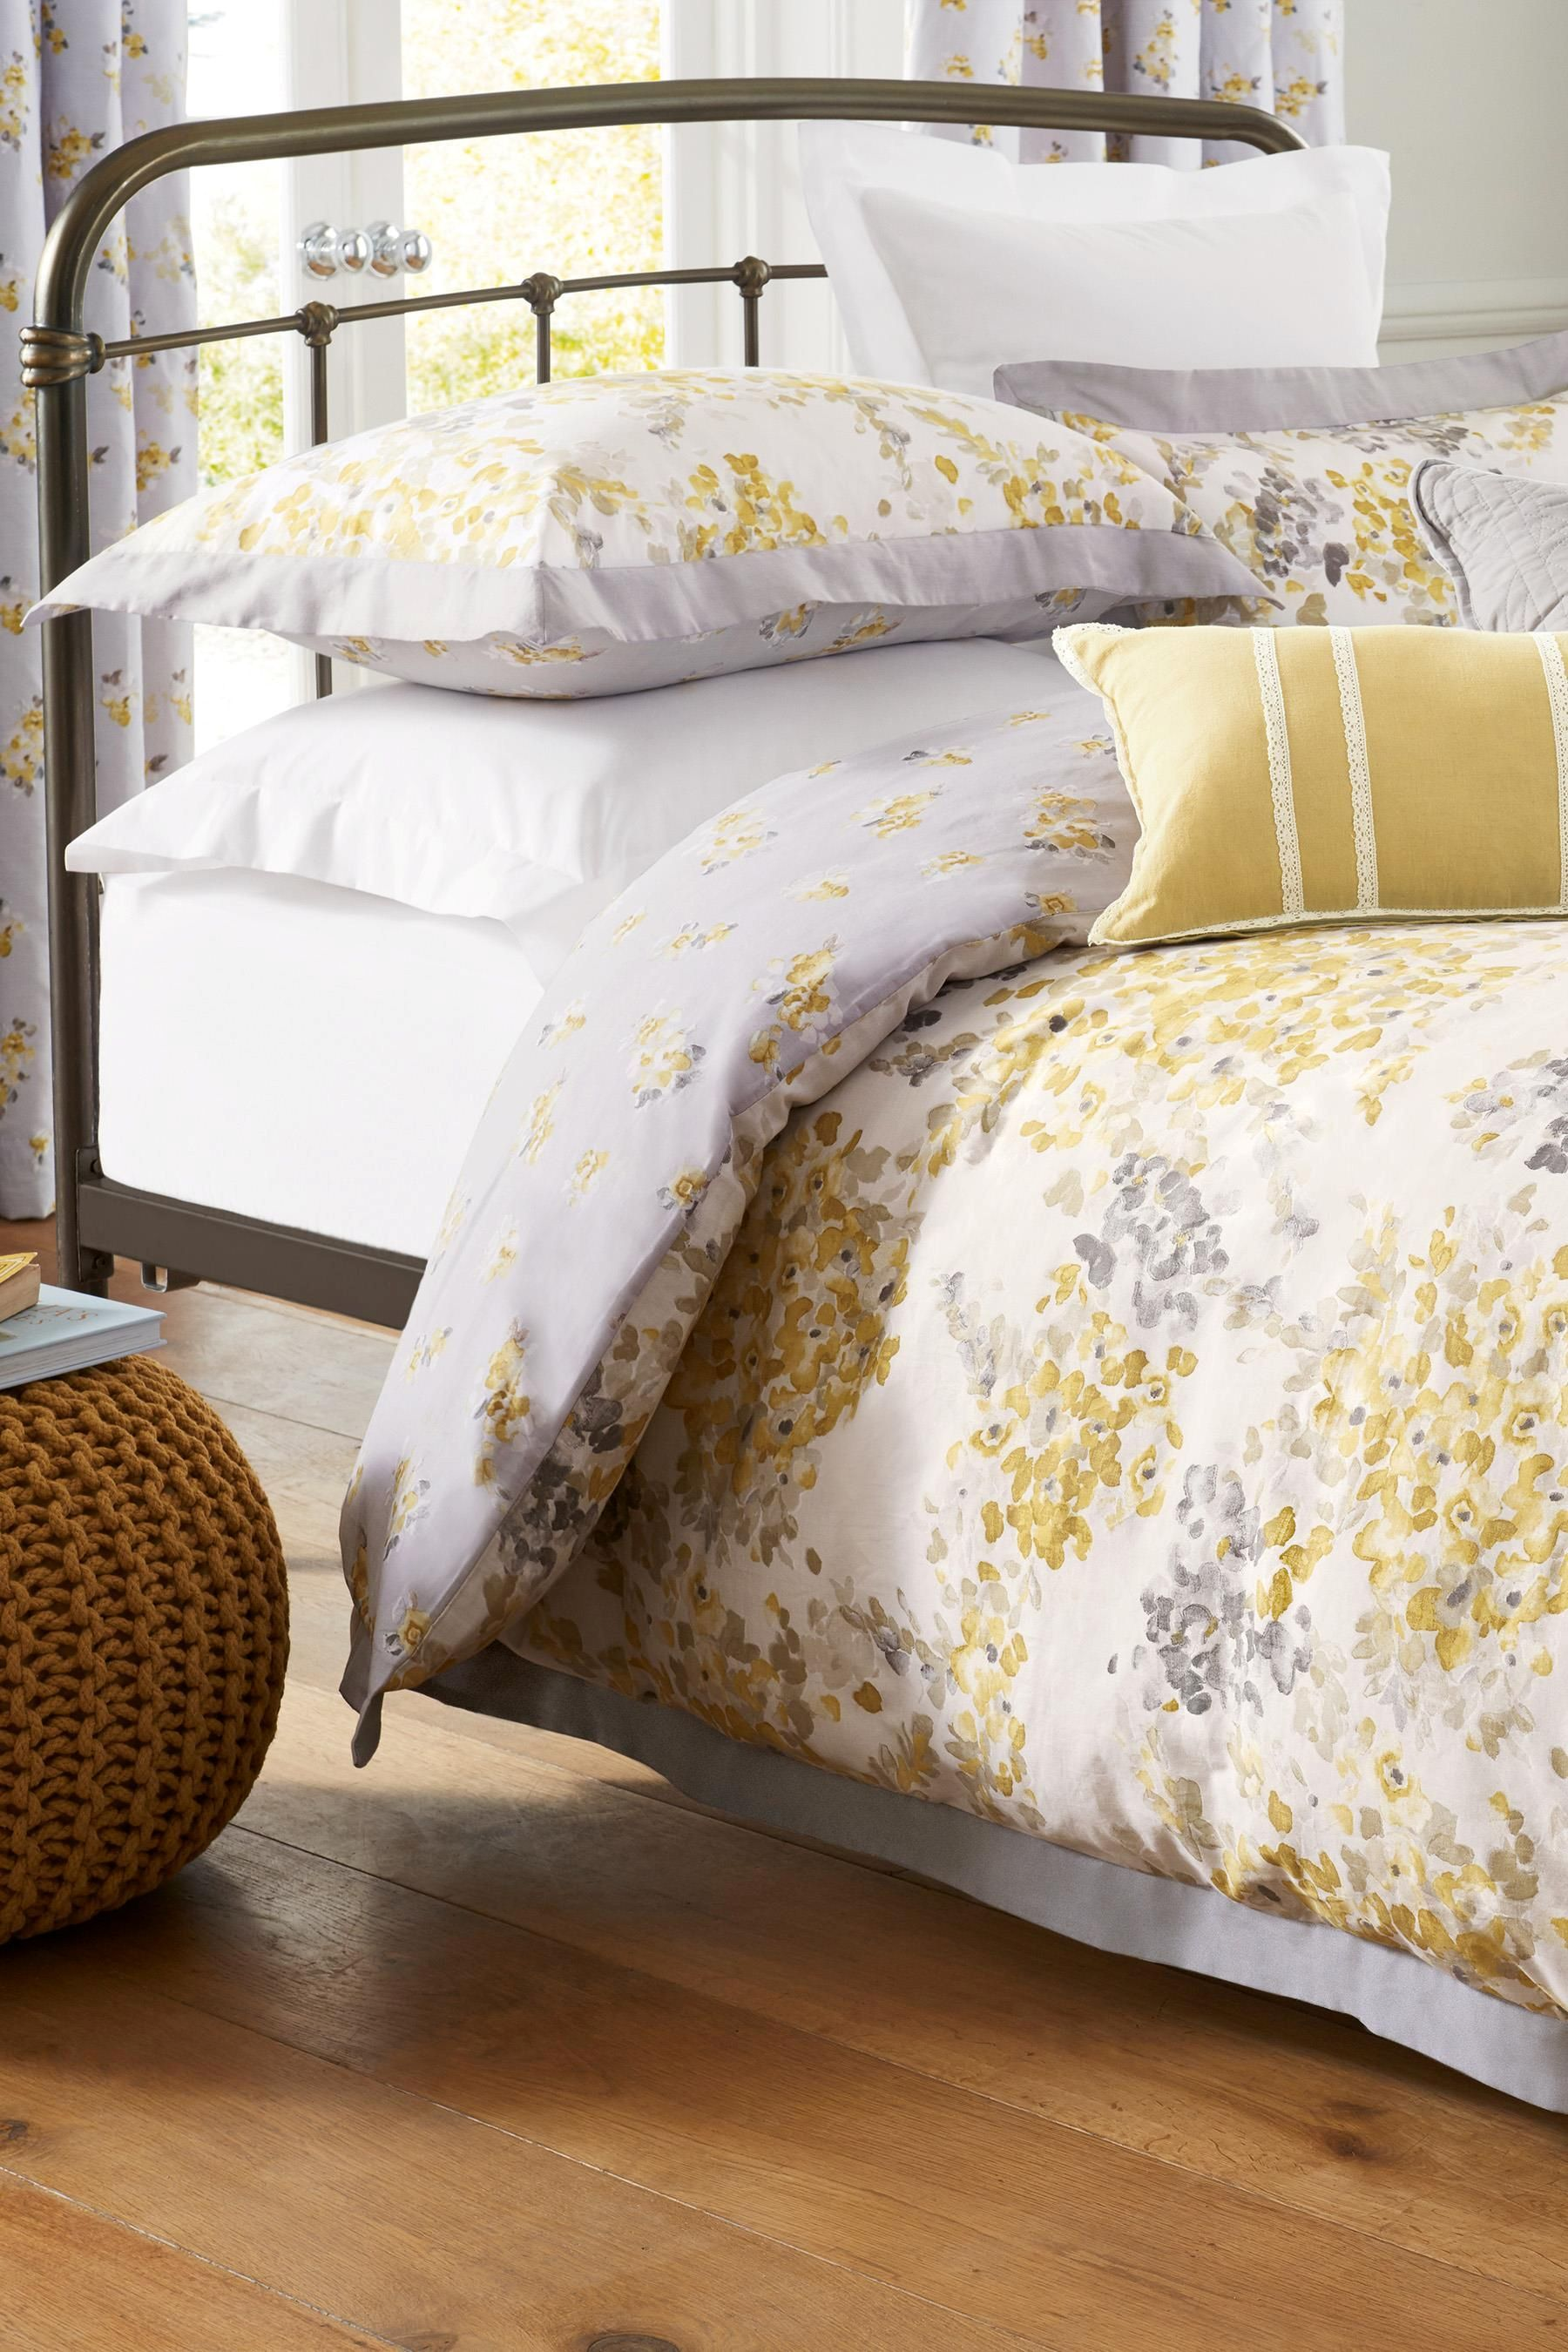 Buy Cotton Sateen Ochre Watercolour Floral Bed Set From The